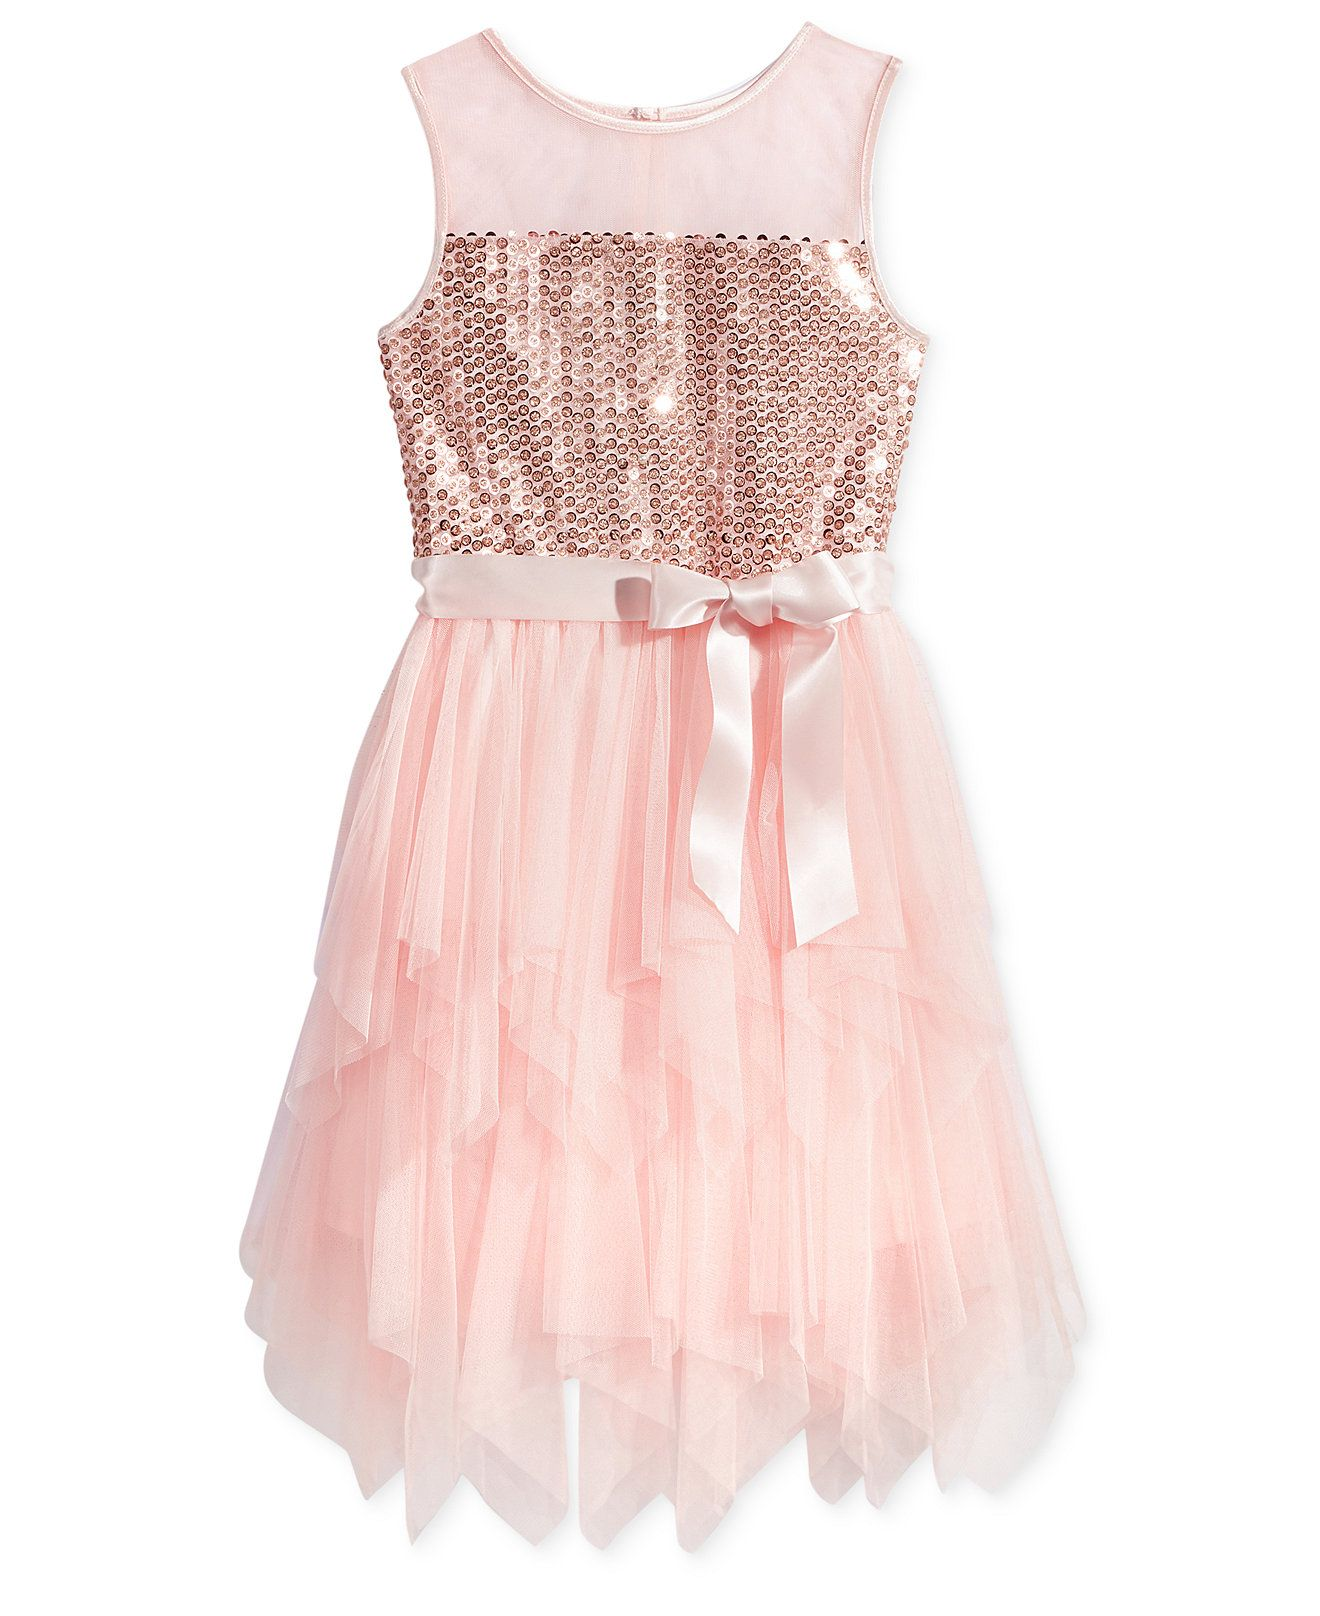 Pink & Violet Sequin Fairy Dress, Big Girls (7-16) - Dresses - Kids ...